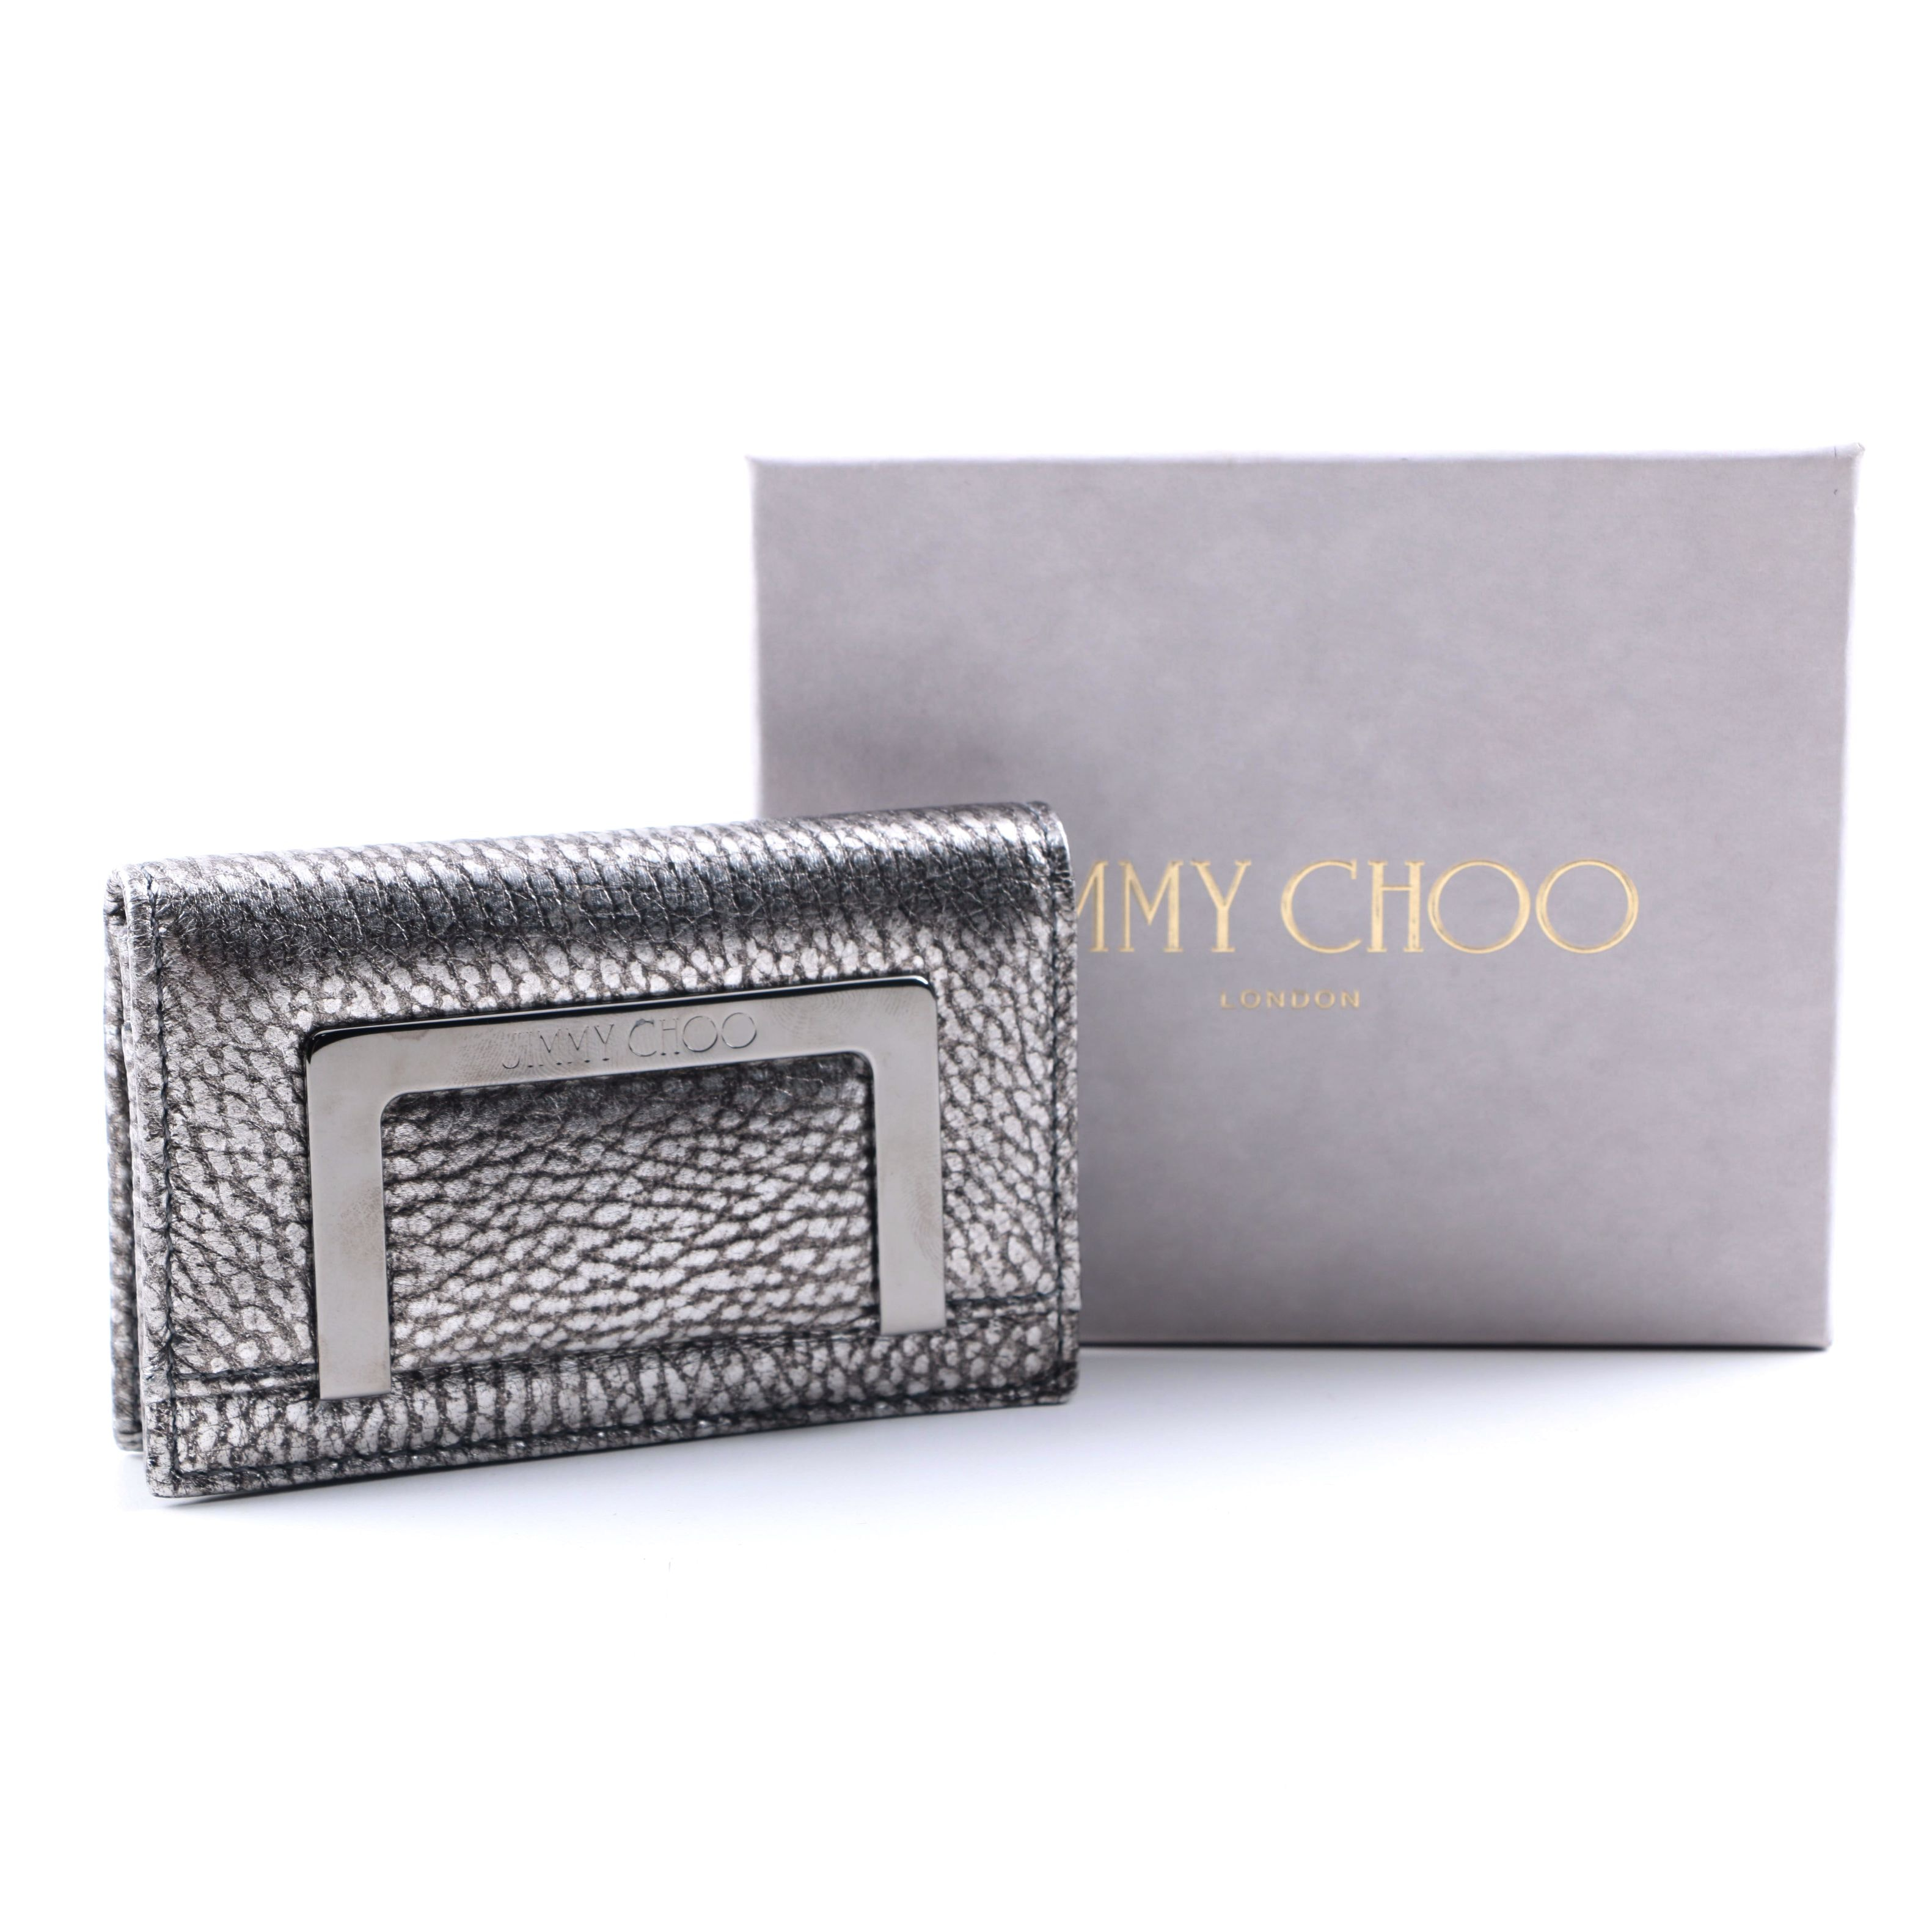 Jimmy Choo Platinum Leather Wallet